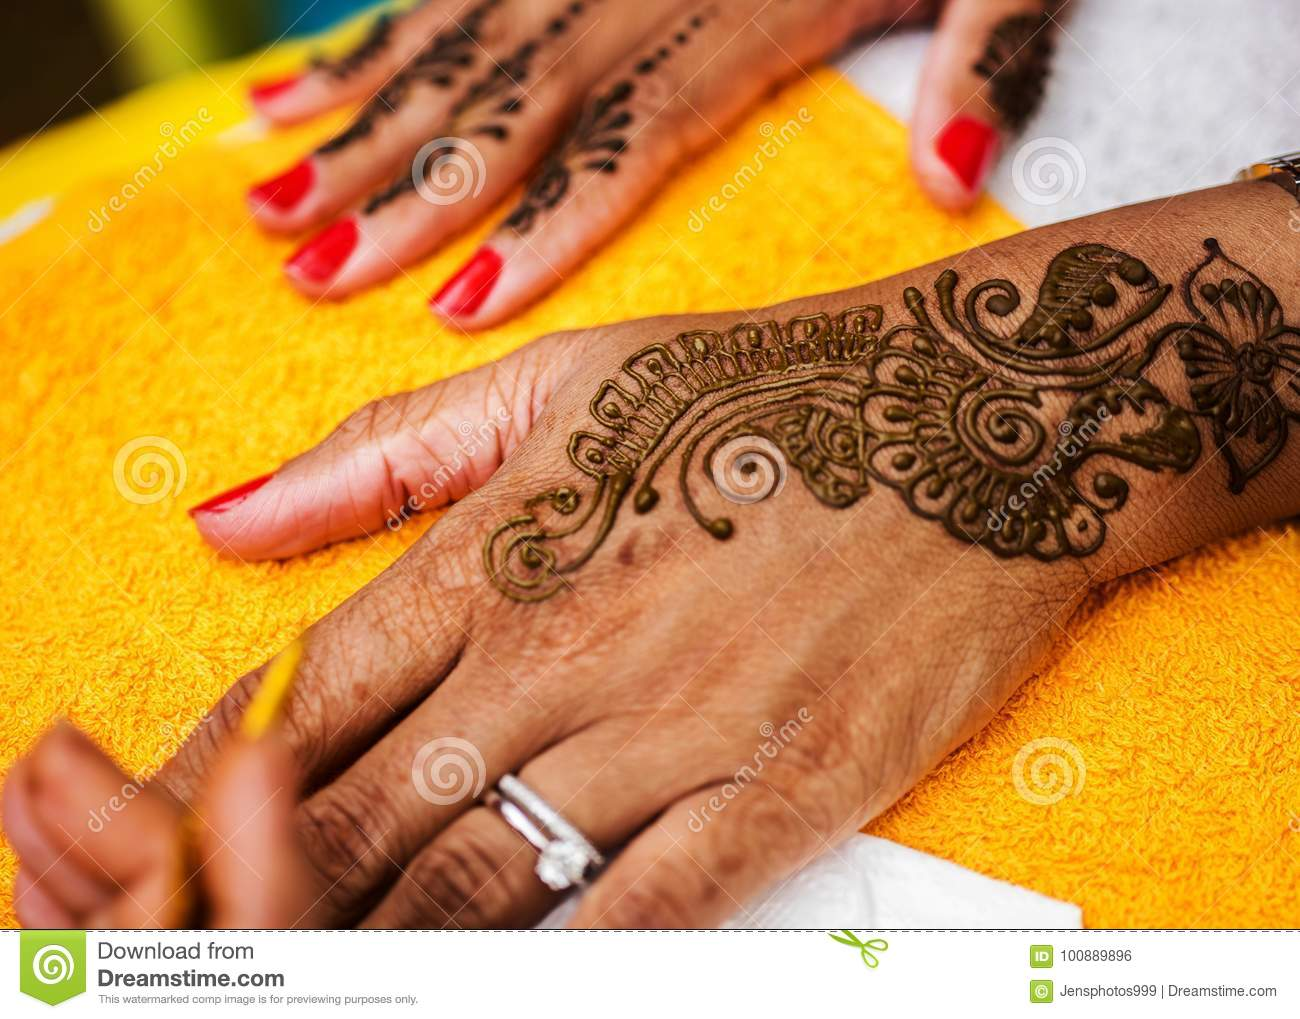 Indian Wedding Guest Having Mehndi Applied Traditional Henna Art